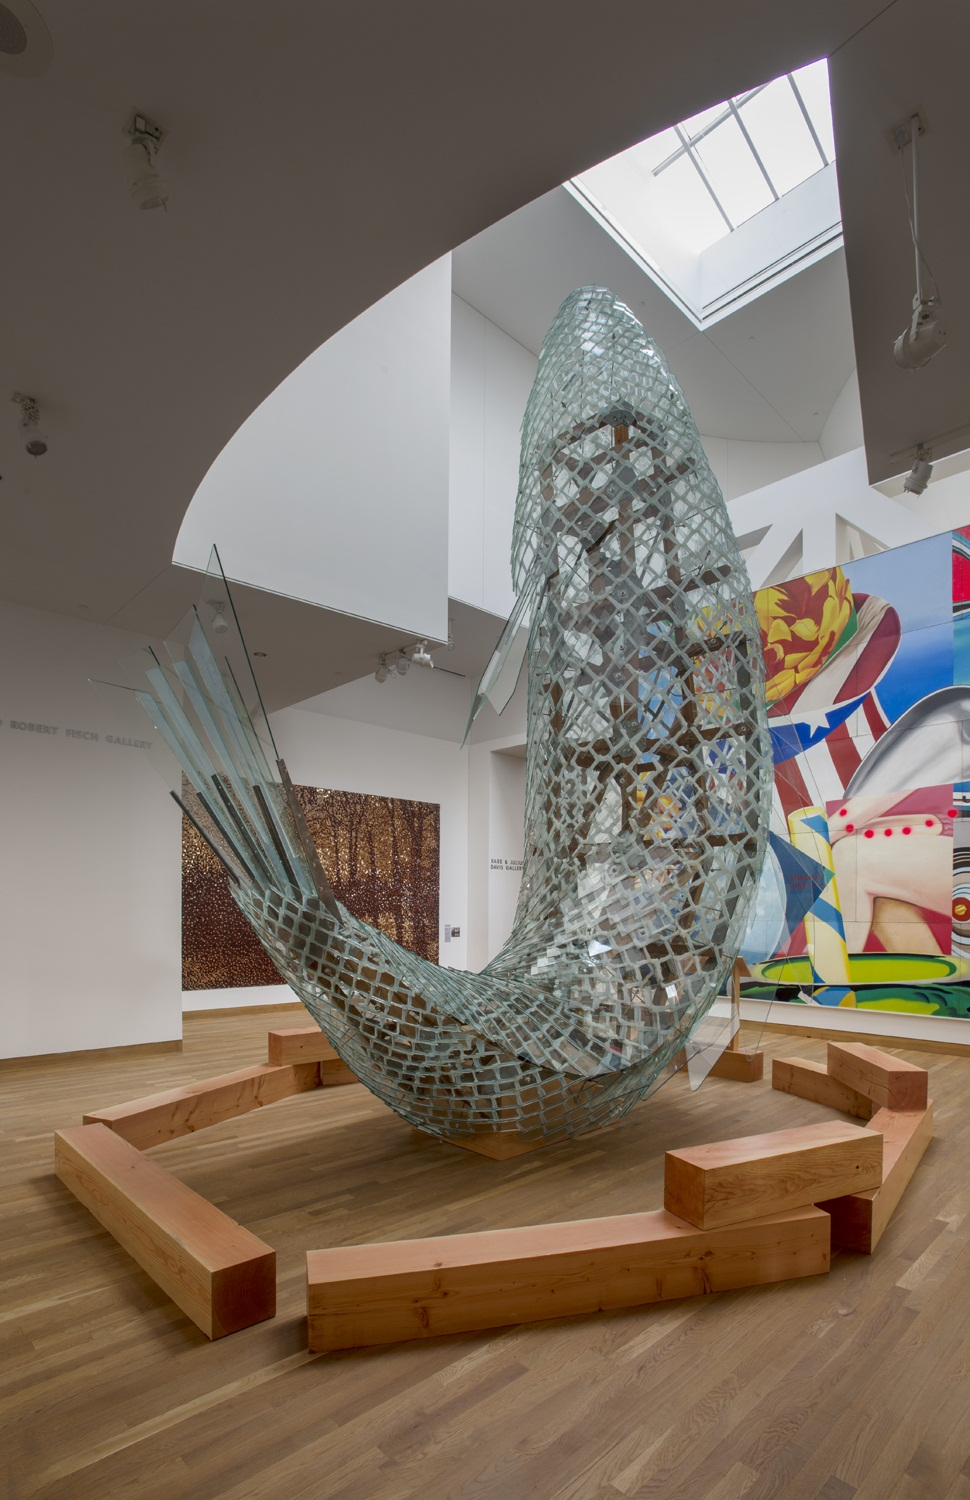 Frank Gehry, Standing Glass Fish, 1986, installed in the Weisman Museum at the University of Minnesota. Photo: Rik Sferra, February 15, 2016.